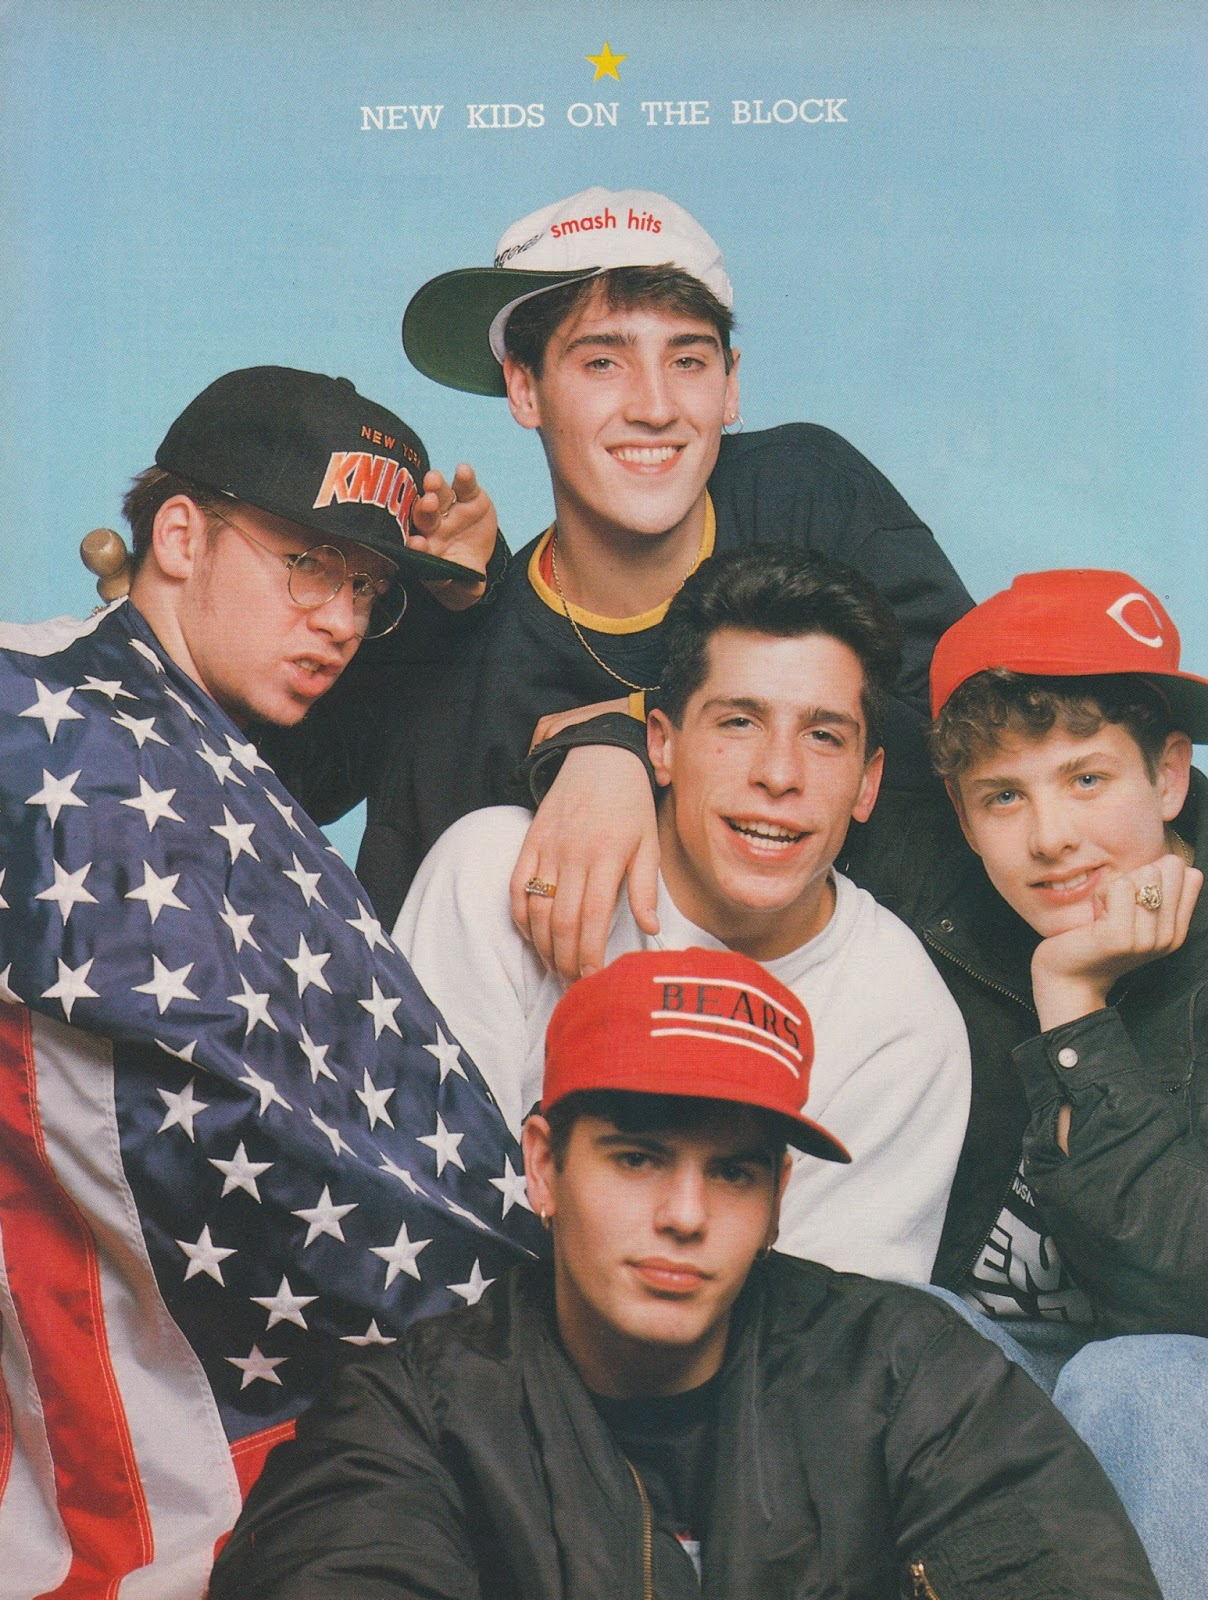 Top Of The Pops 80s: New Kids On The Block Smash Hits 1989